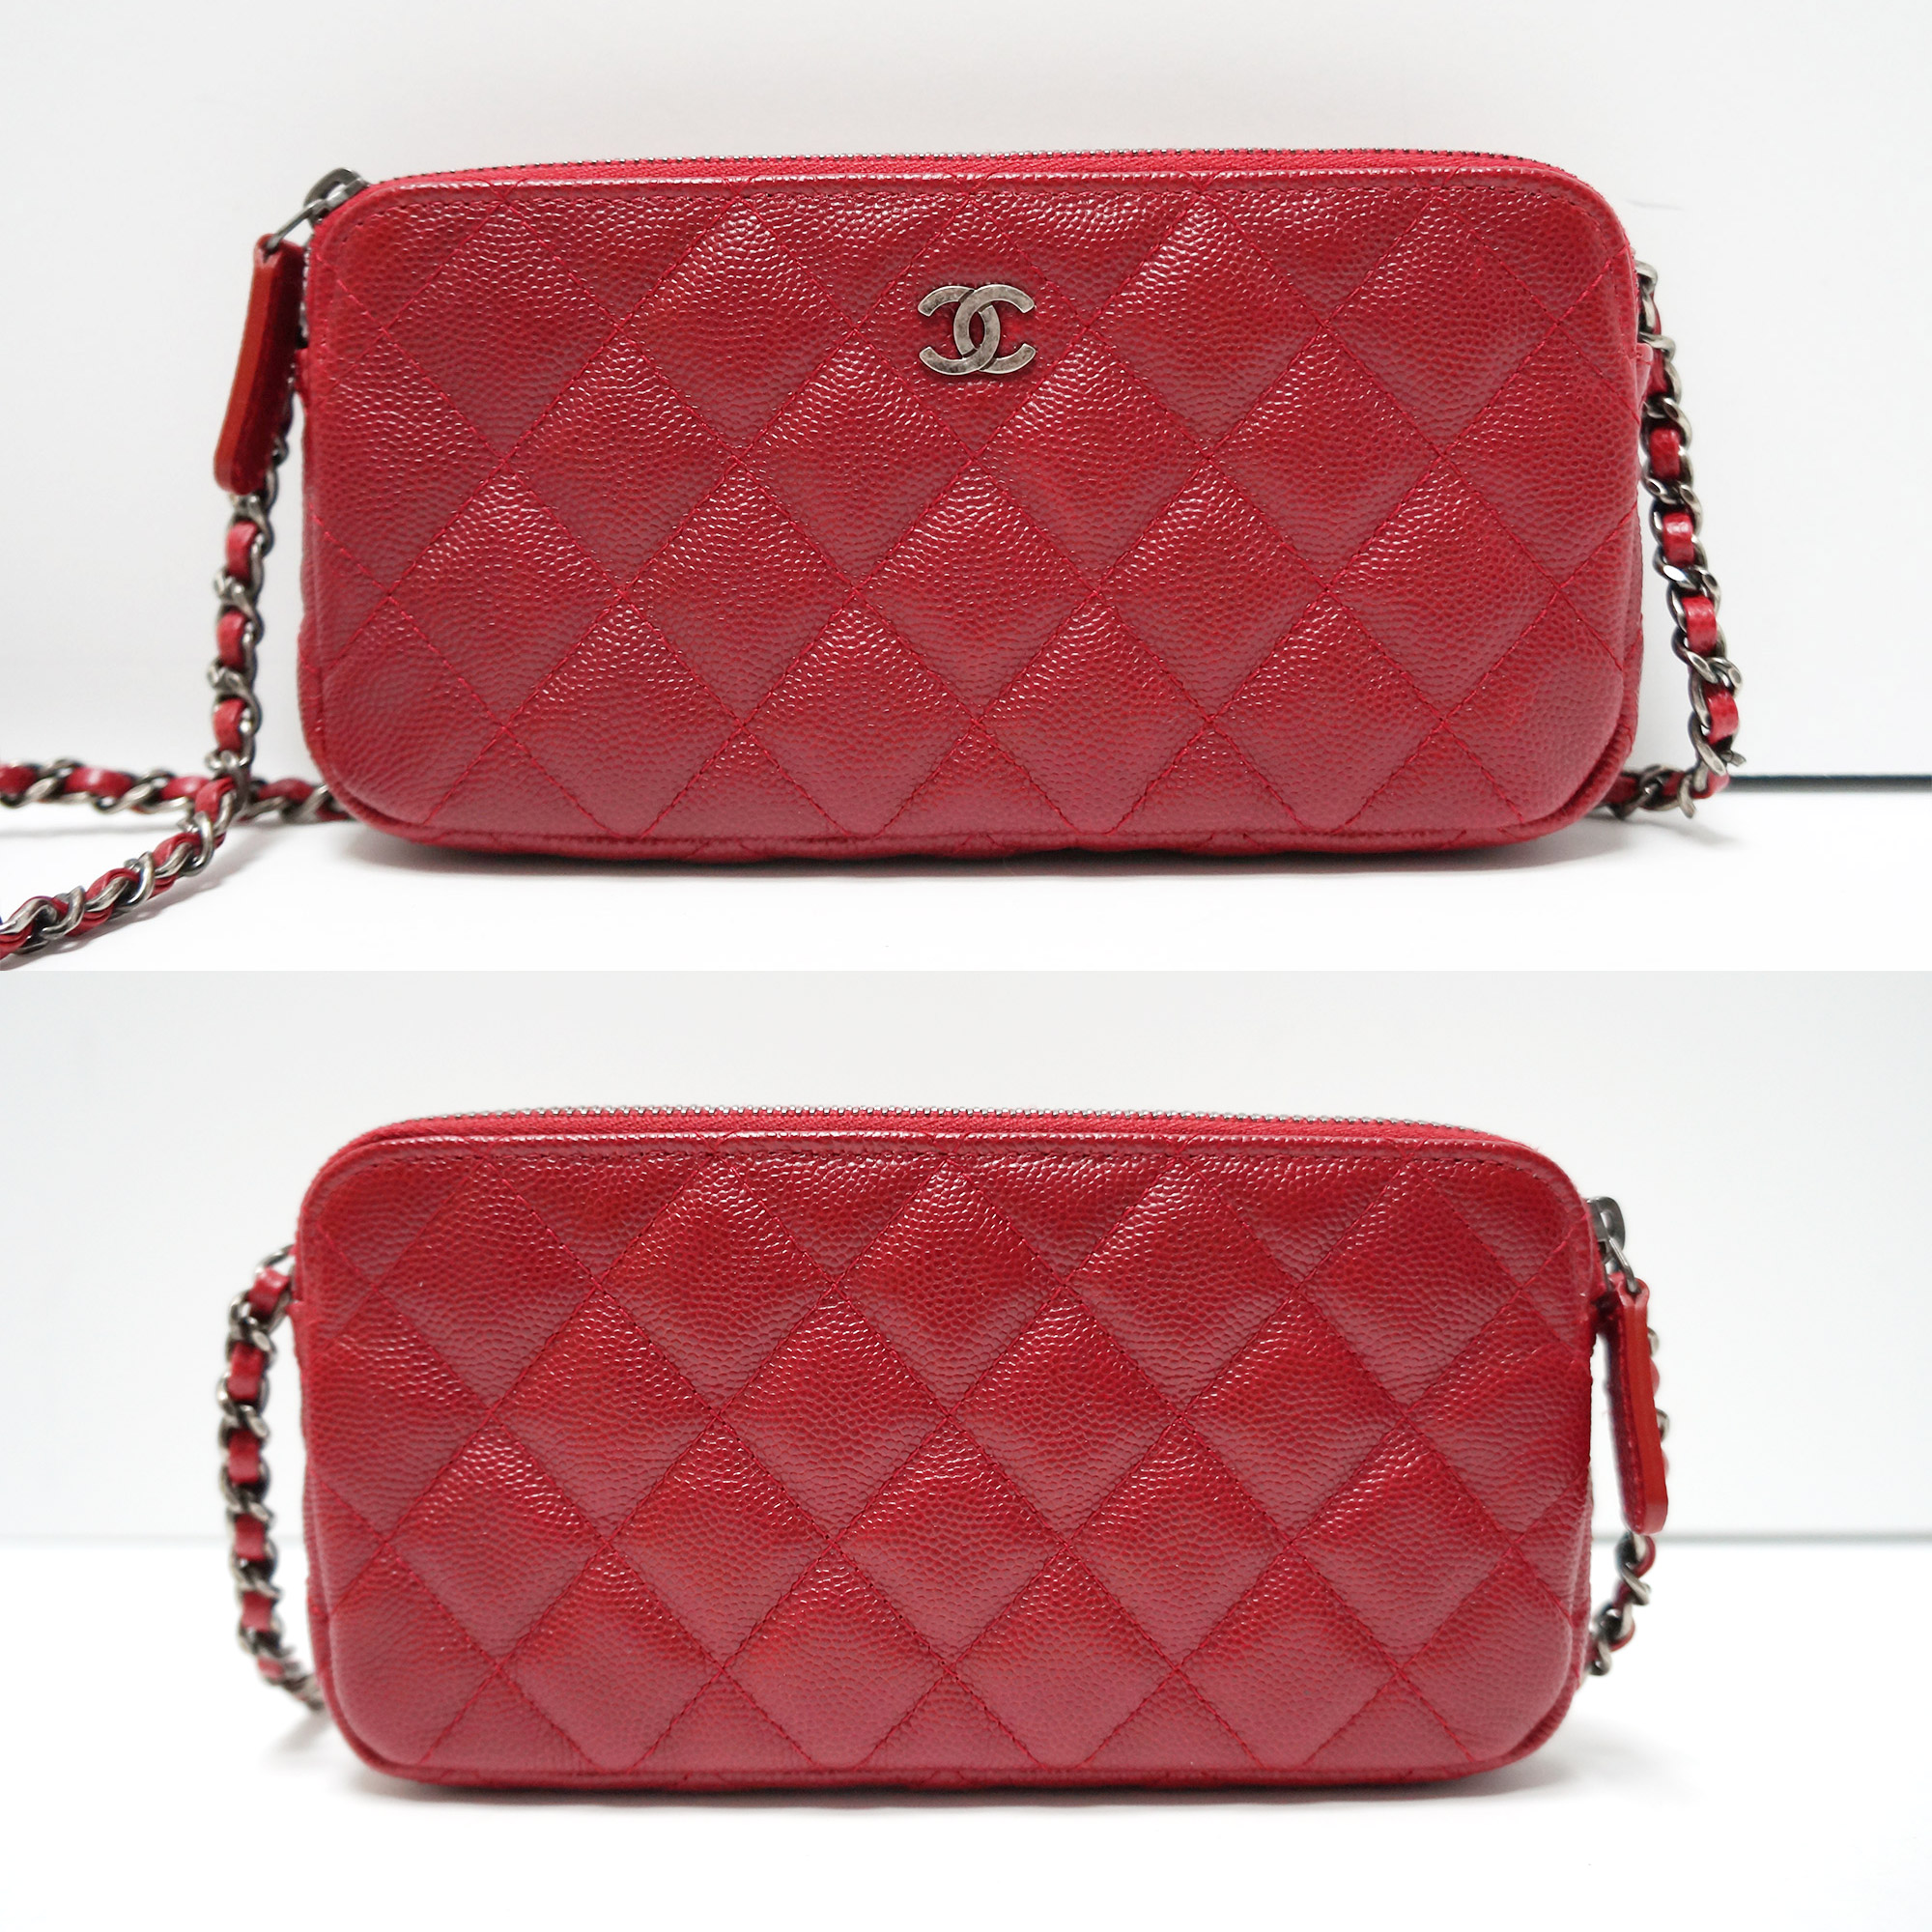 6199d11eef63 Chanel Wallet Bag Red | Stanford Center for Opportunity Policy in ...